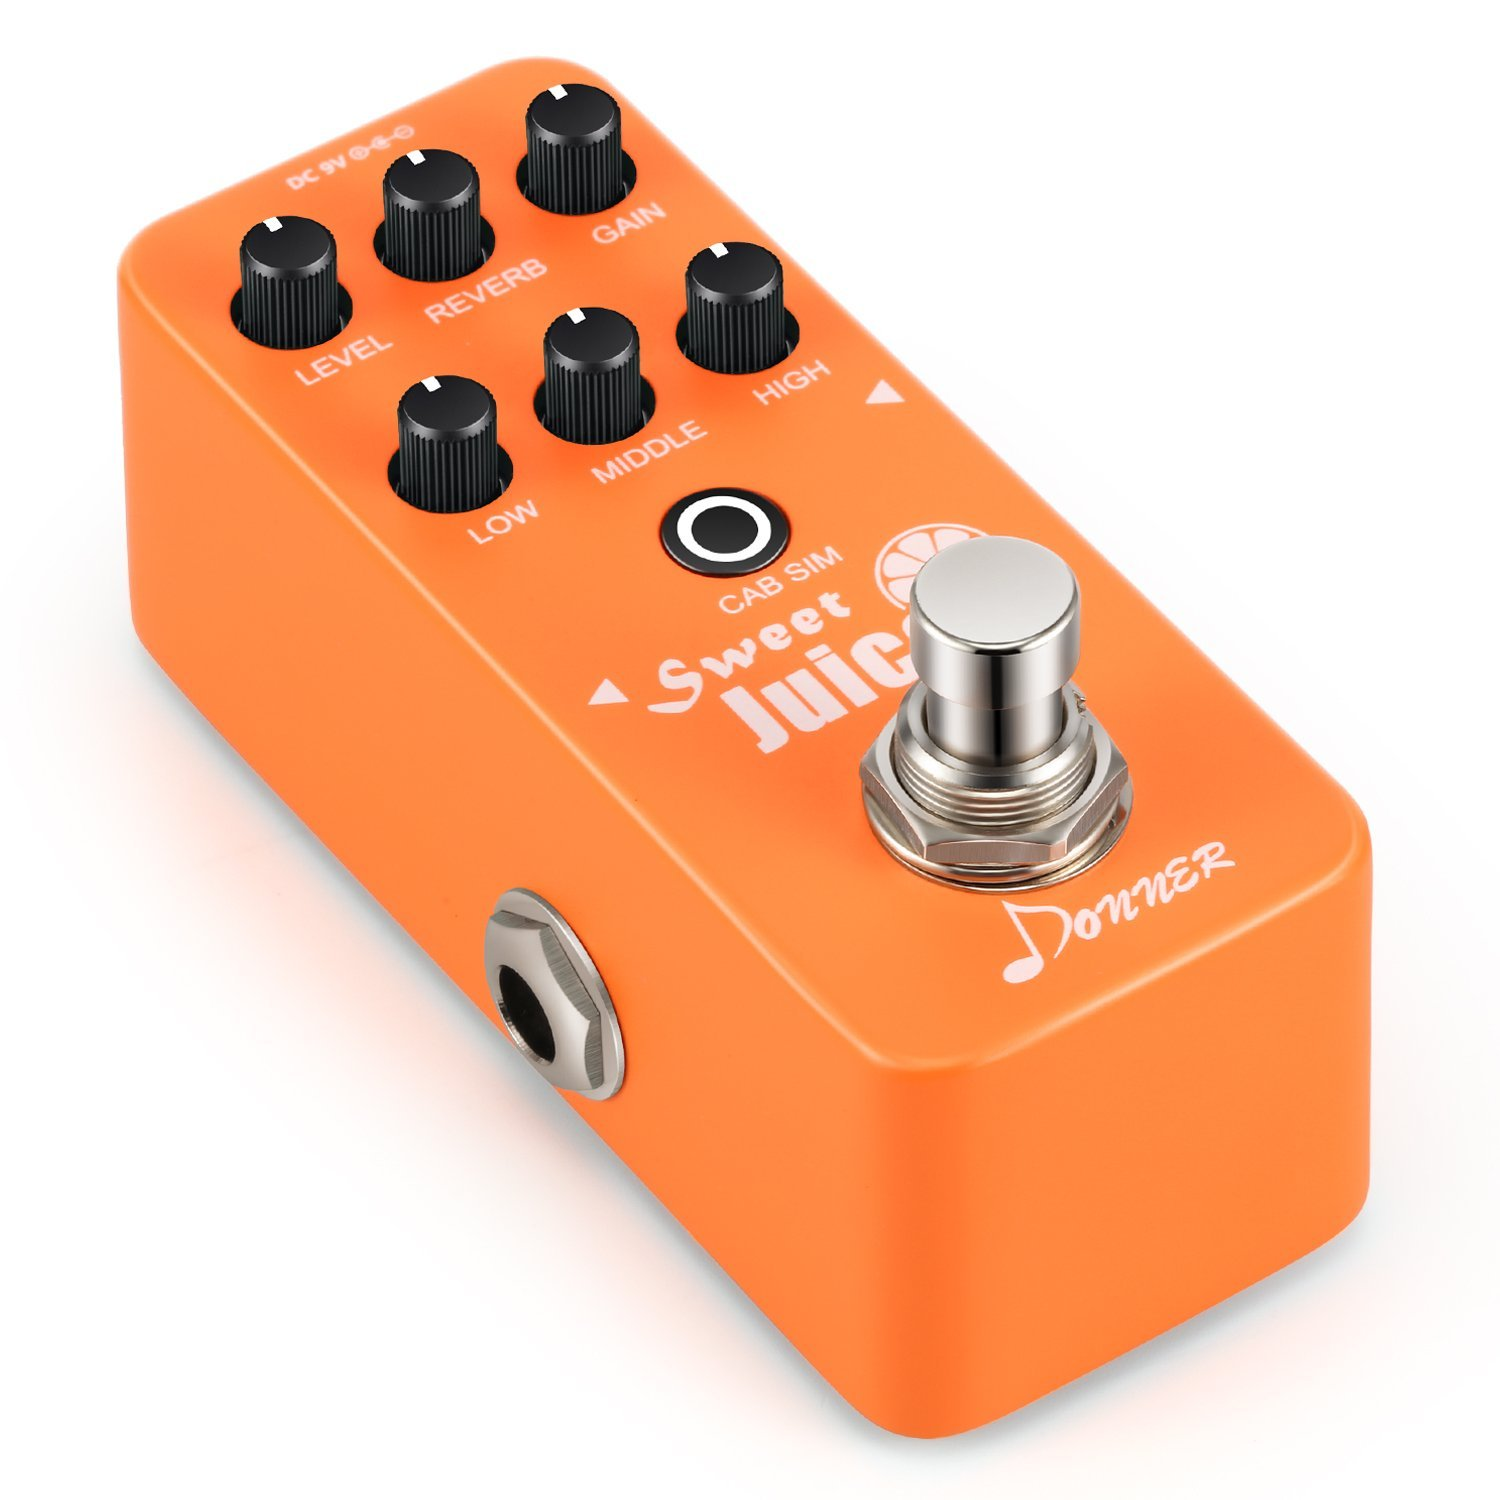 Donner Sweet Juice Mini Electric Guitar Preamp Effect Pedal by Donner